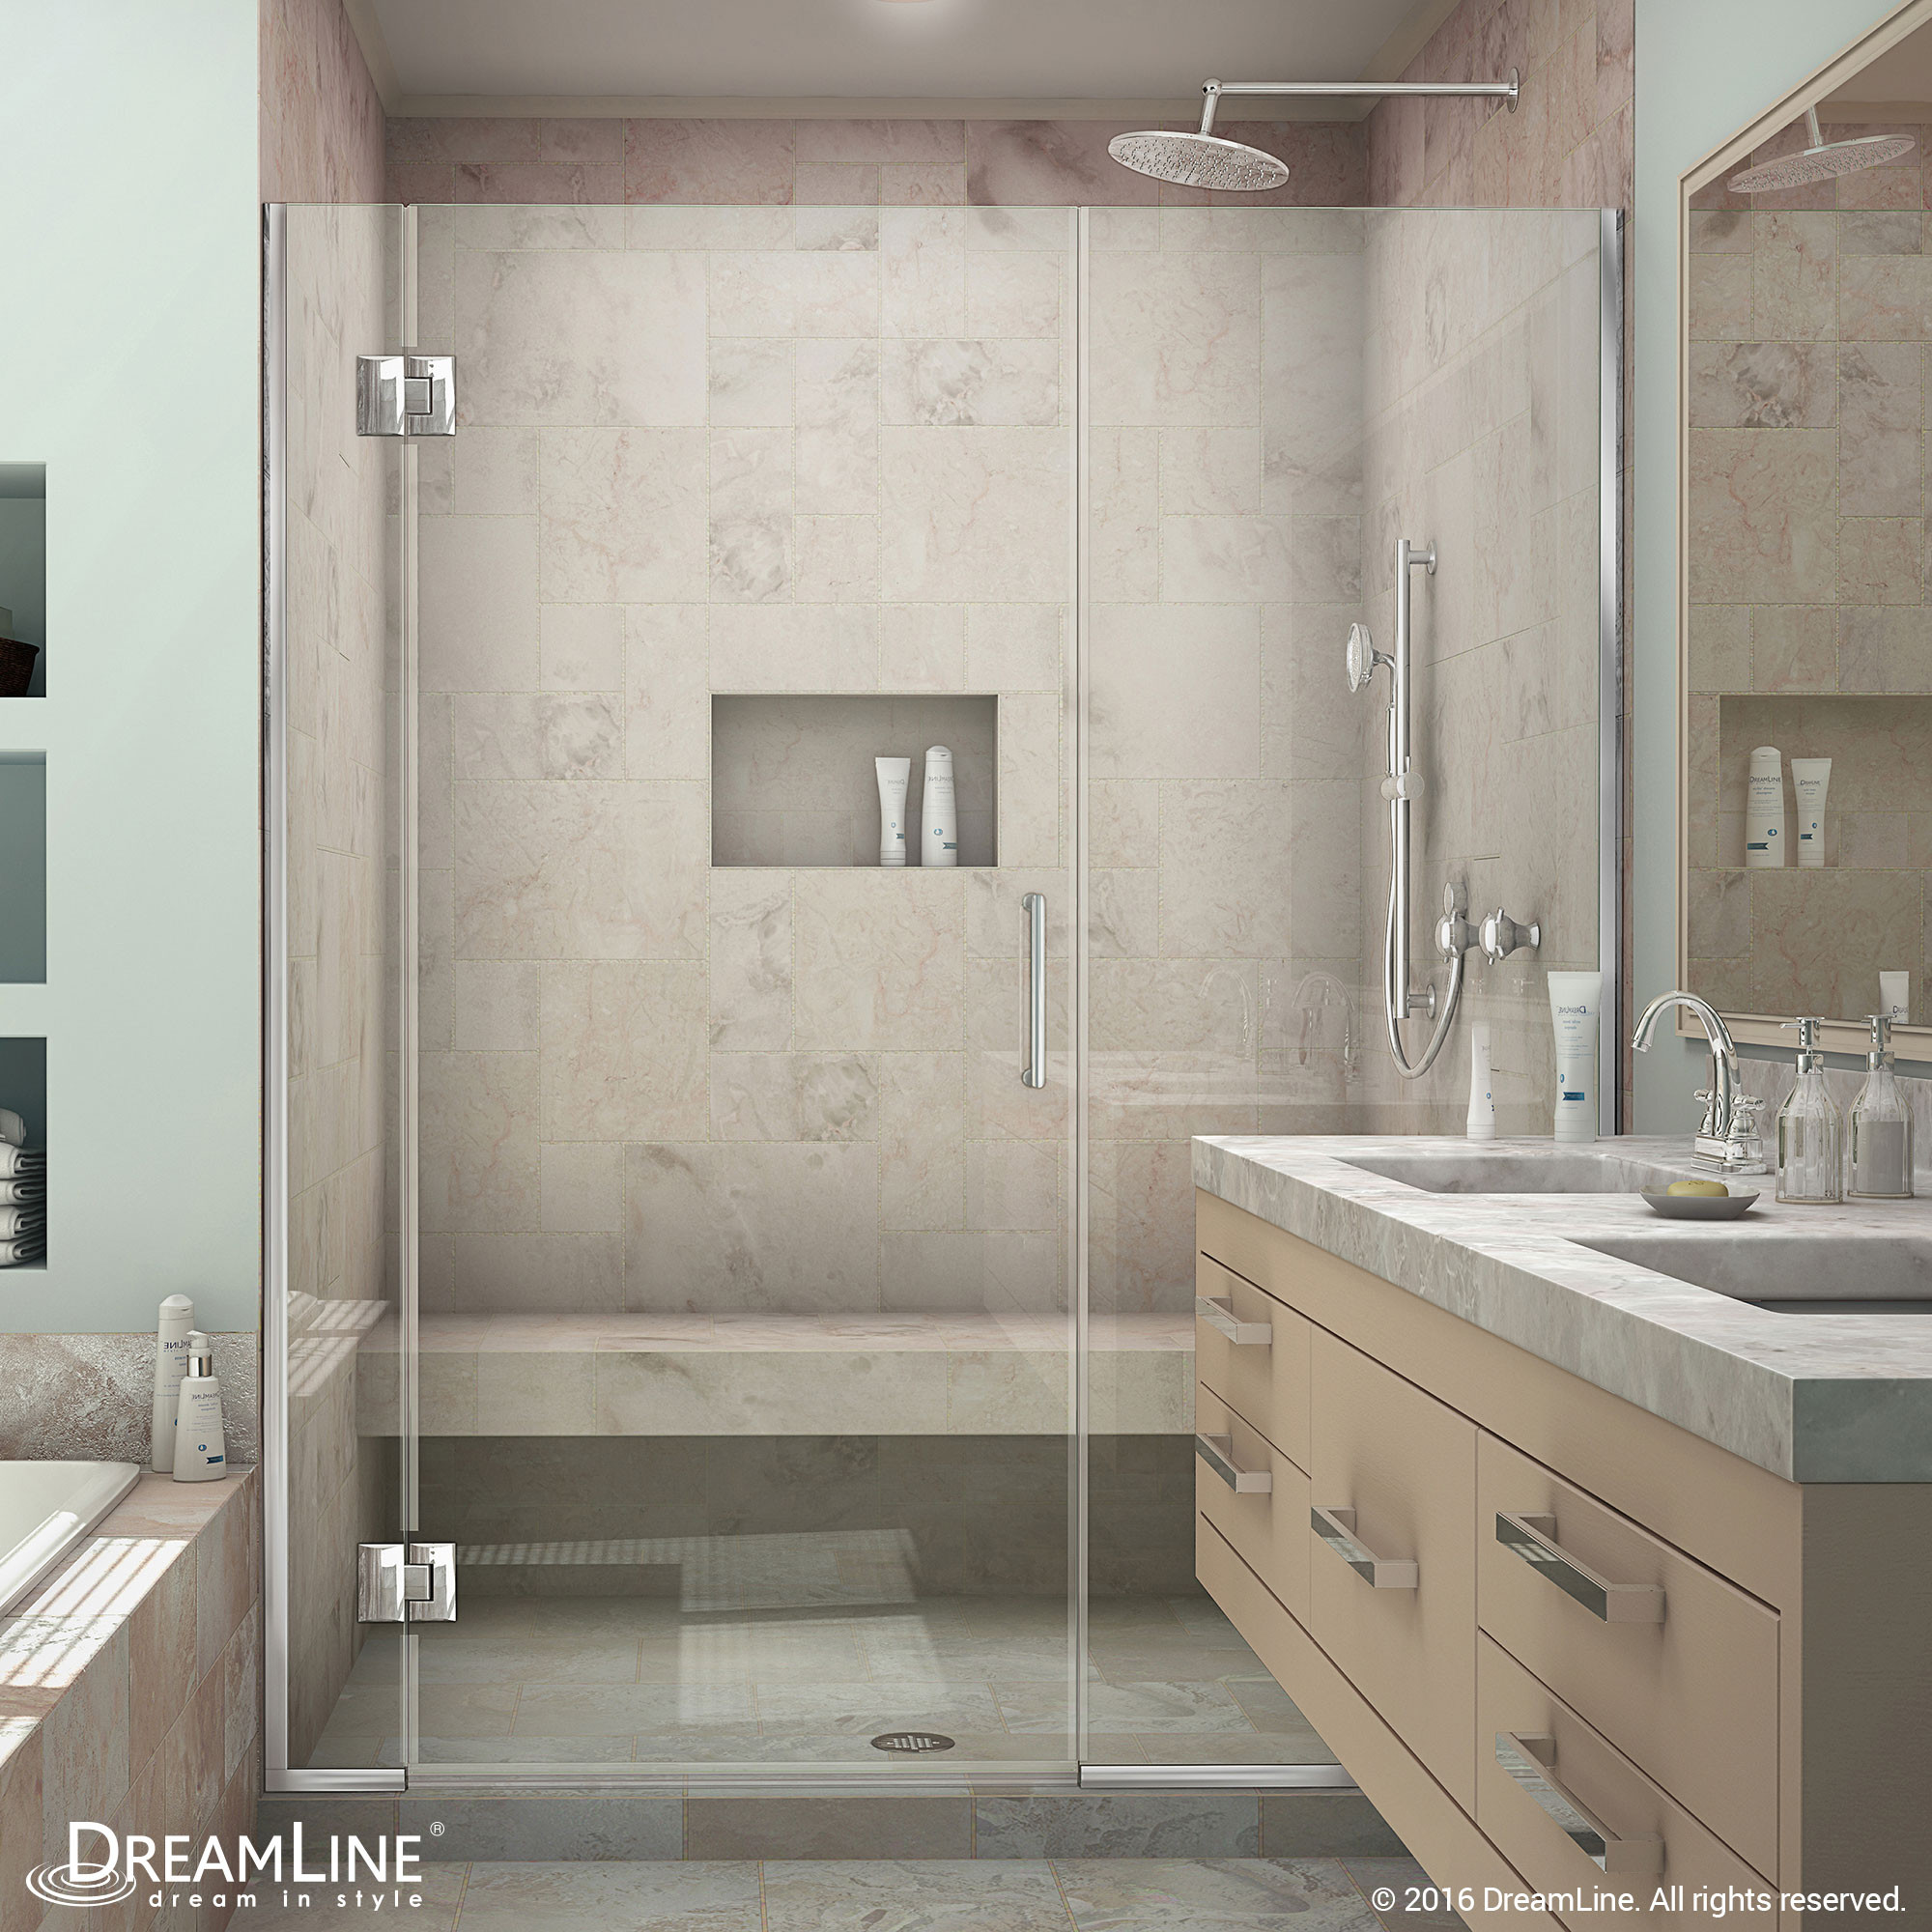 DreamLine D12414572-01 Unidoor-X 44 1/2 - 45 in. W x 72 in. H Hinged Shower Door in Chrome